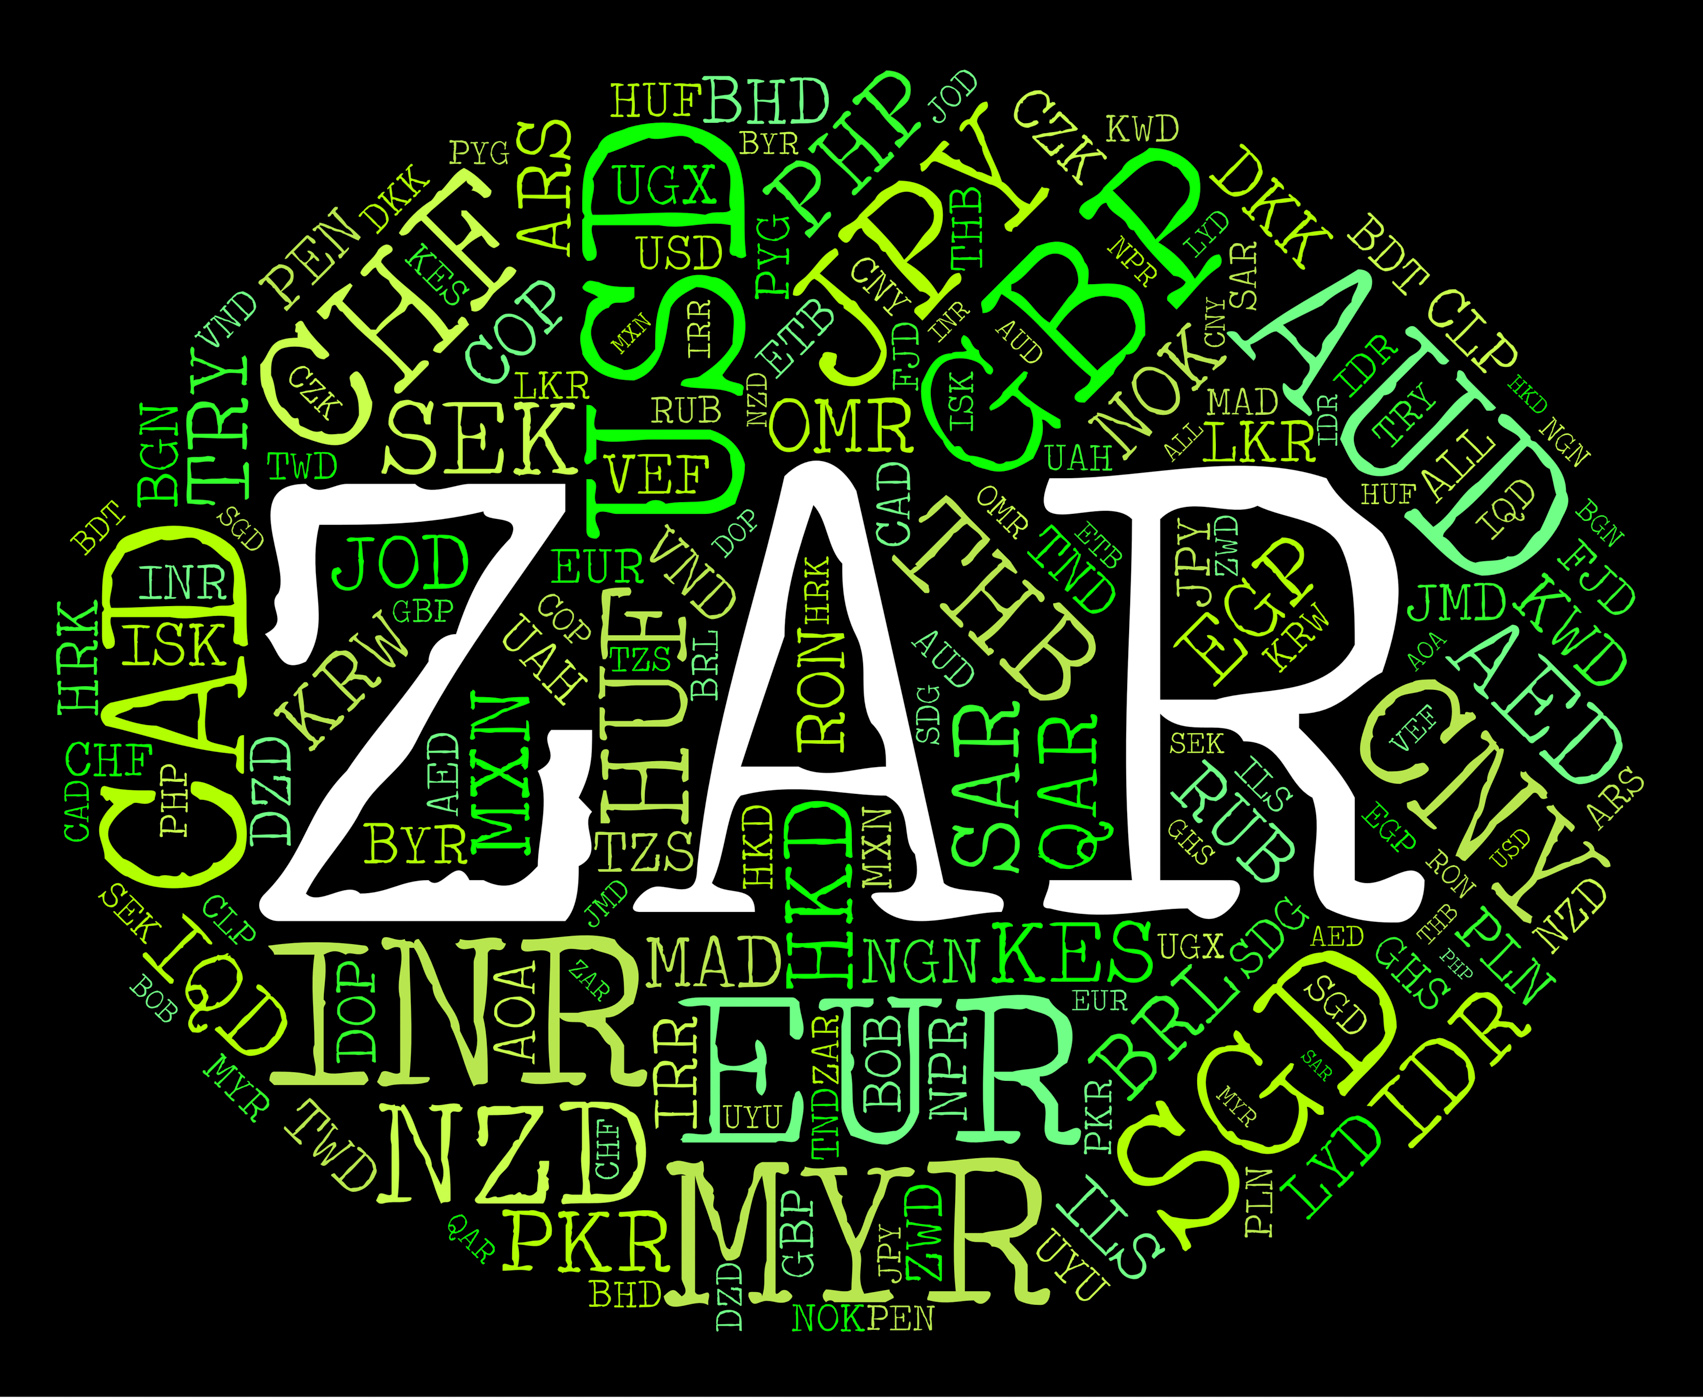 Zar currency represents south african rands and banknote photo